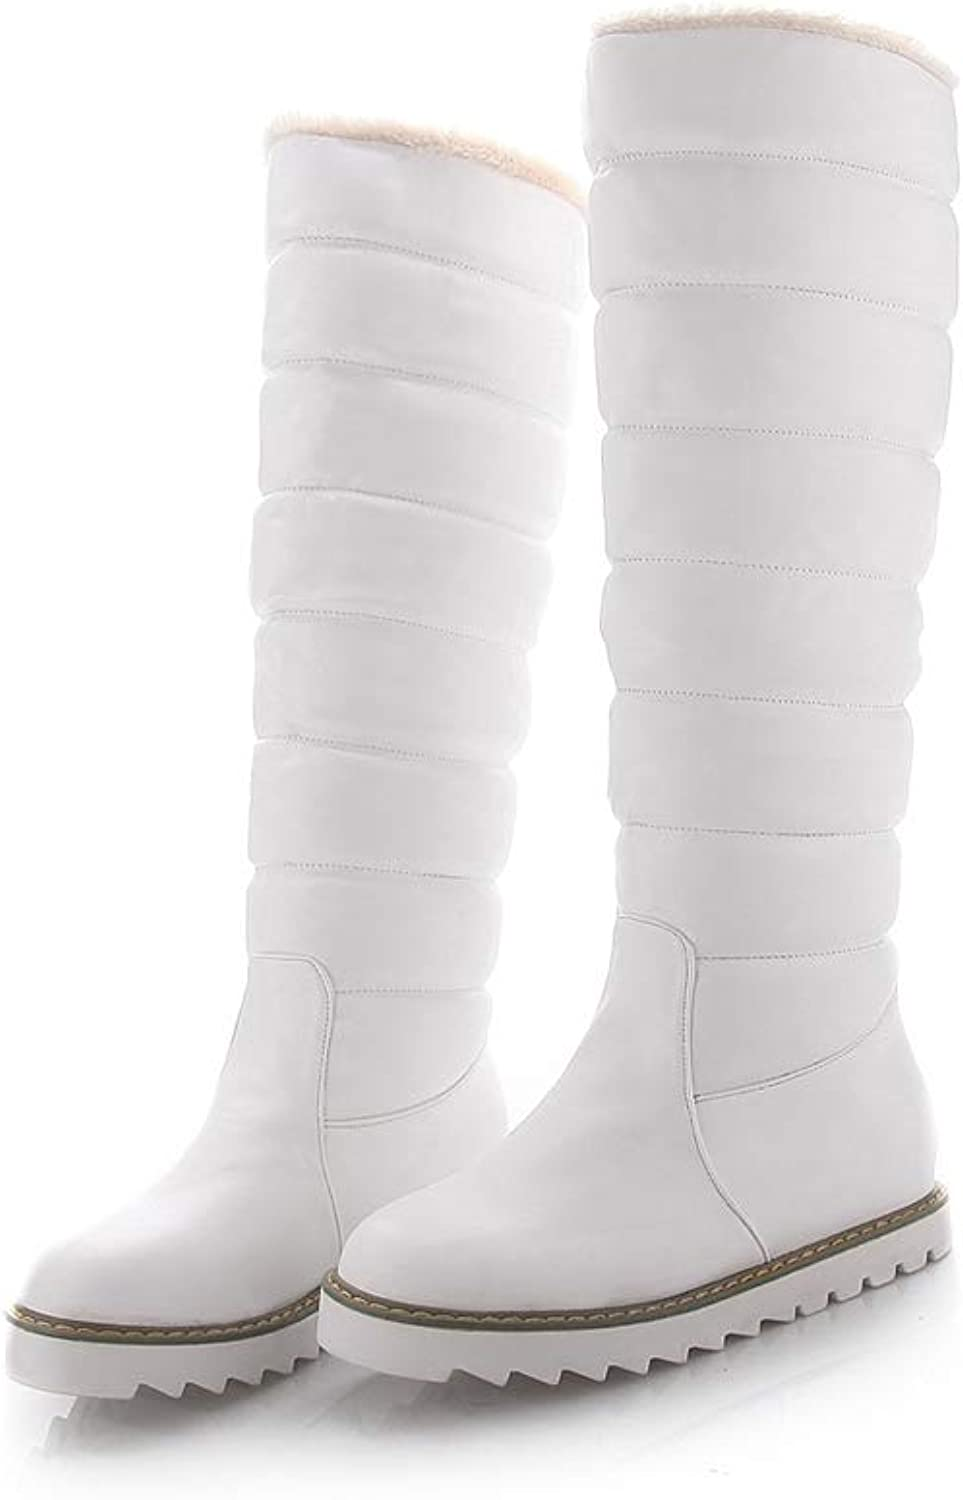 Hoxekle Fashion White Elegant Women shoes Wedge Low Heel Mid Calf Snow Boots Women Motorcycle Boots